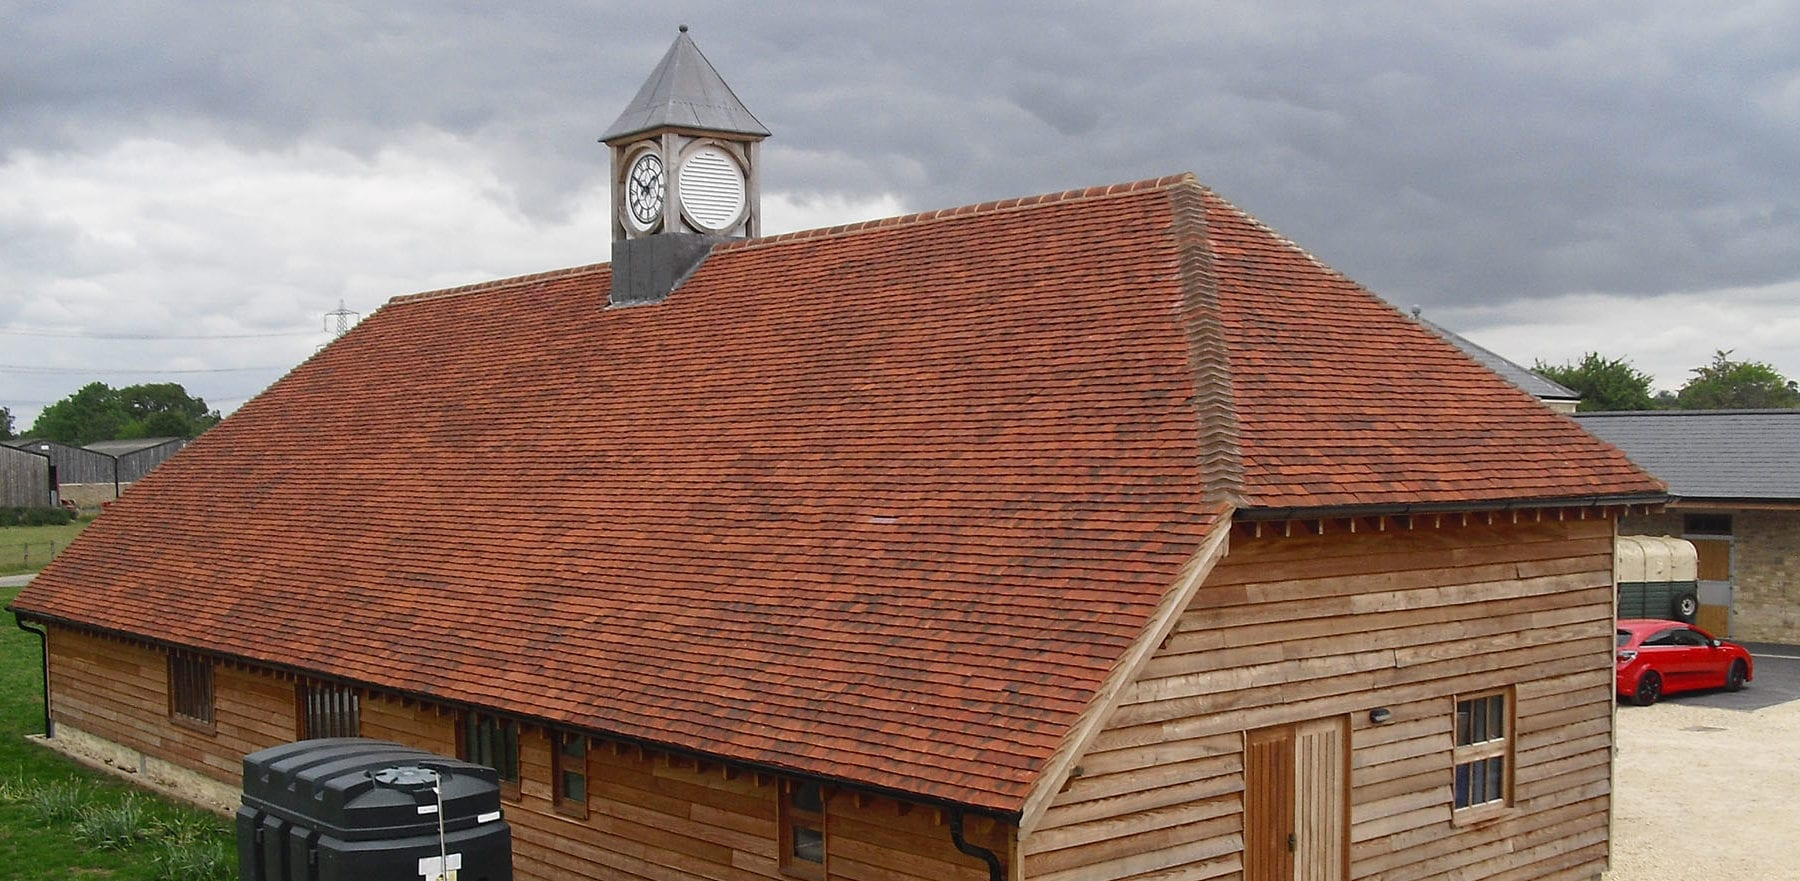 Lifestiles - Handmade Wiltshire Clay Roof Tiles - Oxford, England 2